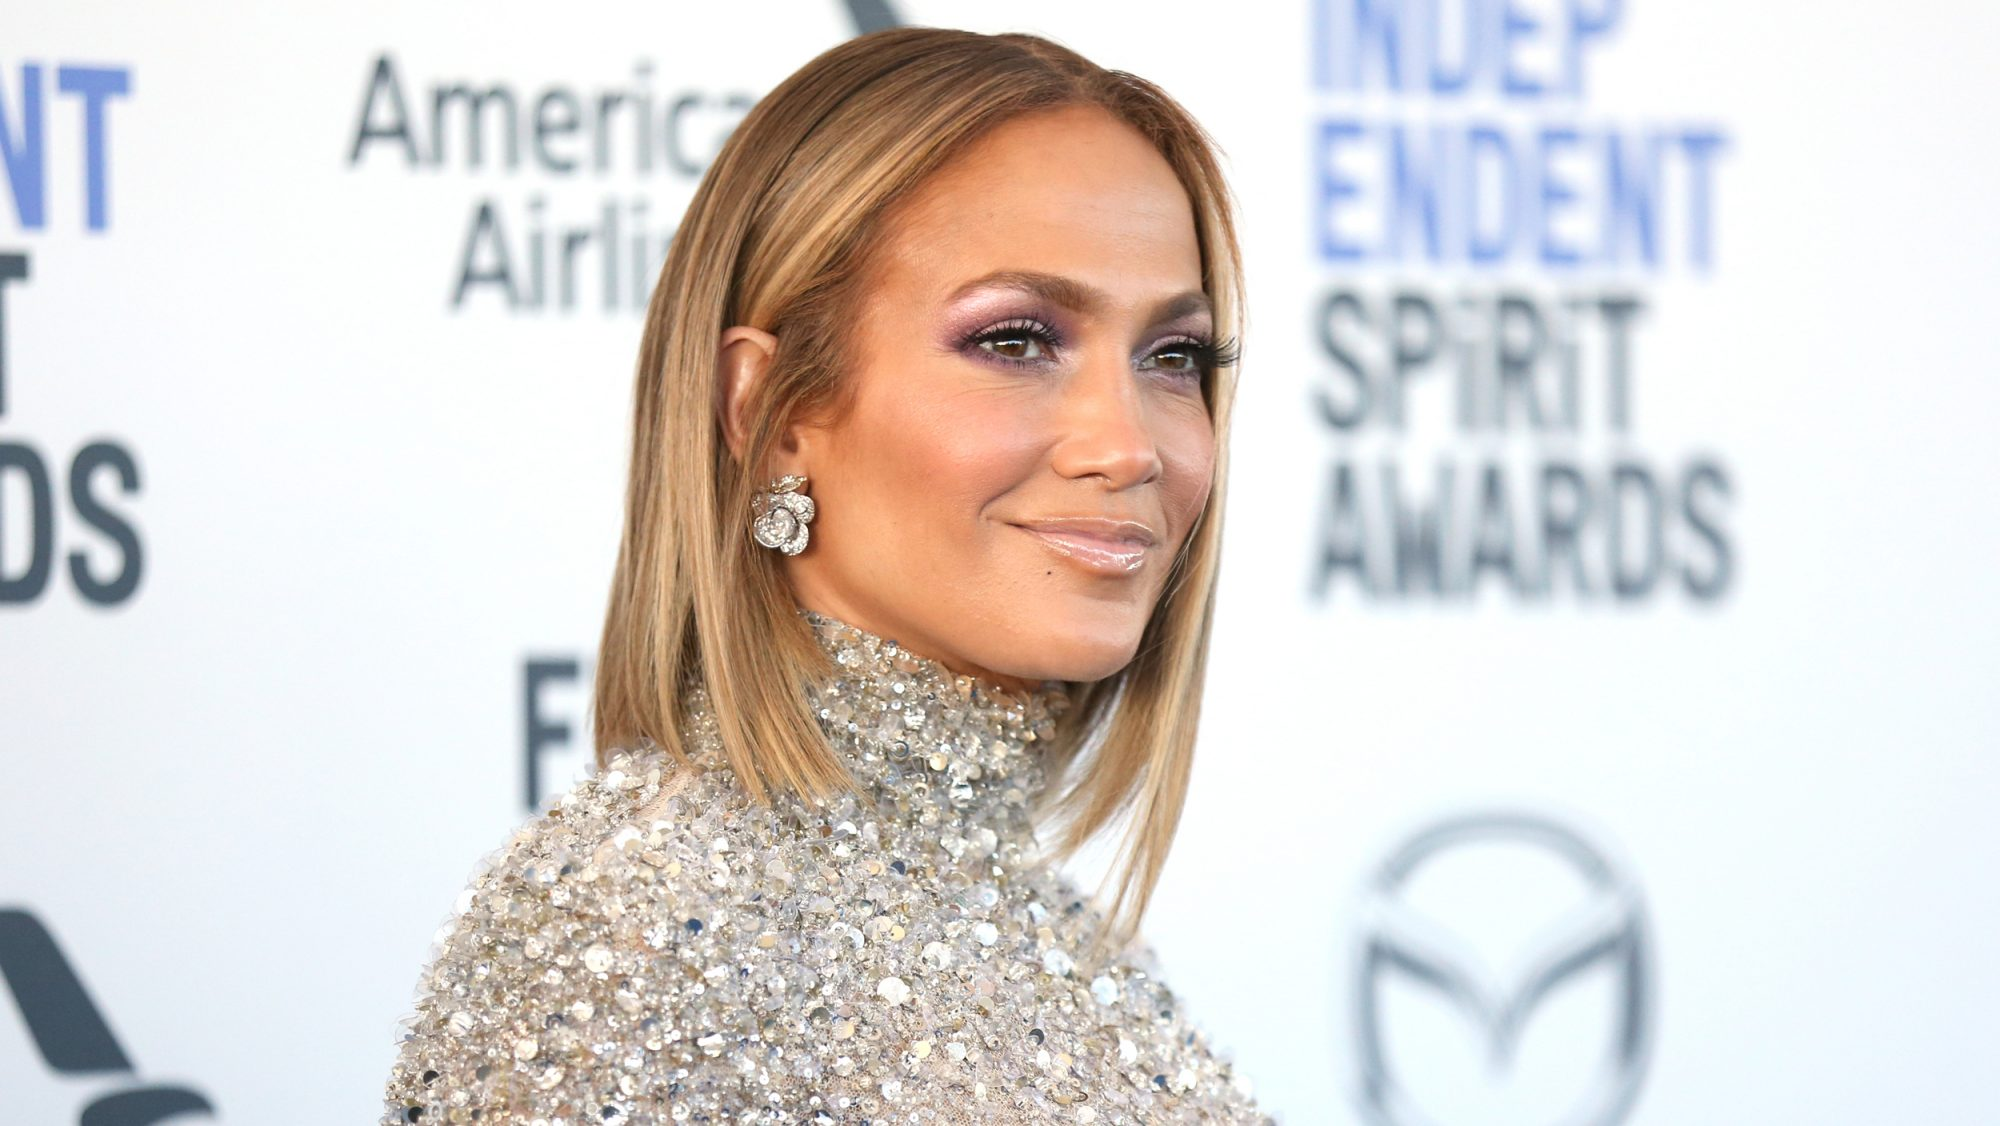 NEWS: J.Lo's Highlights Are Back